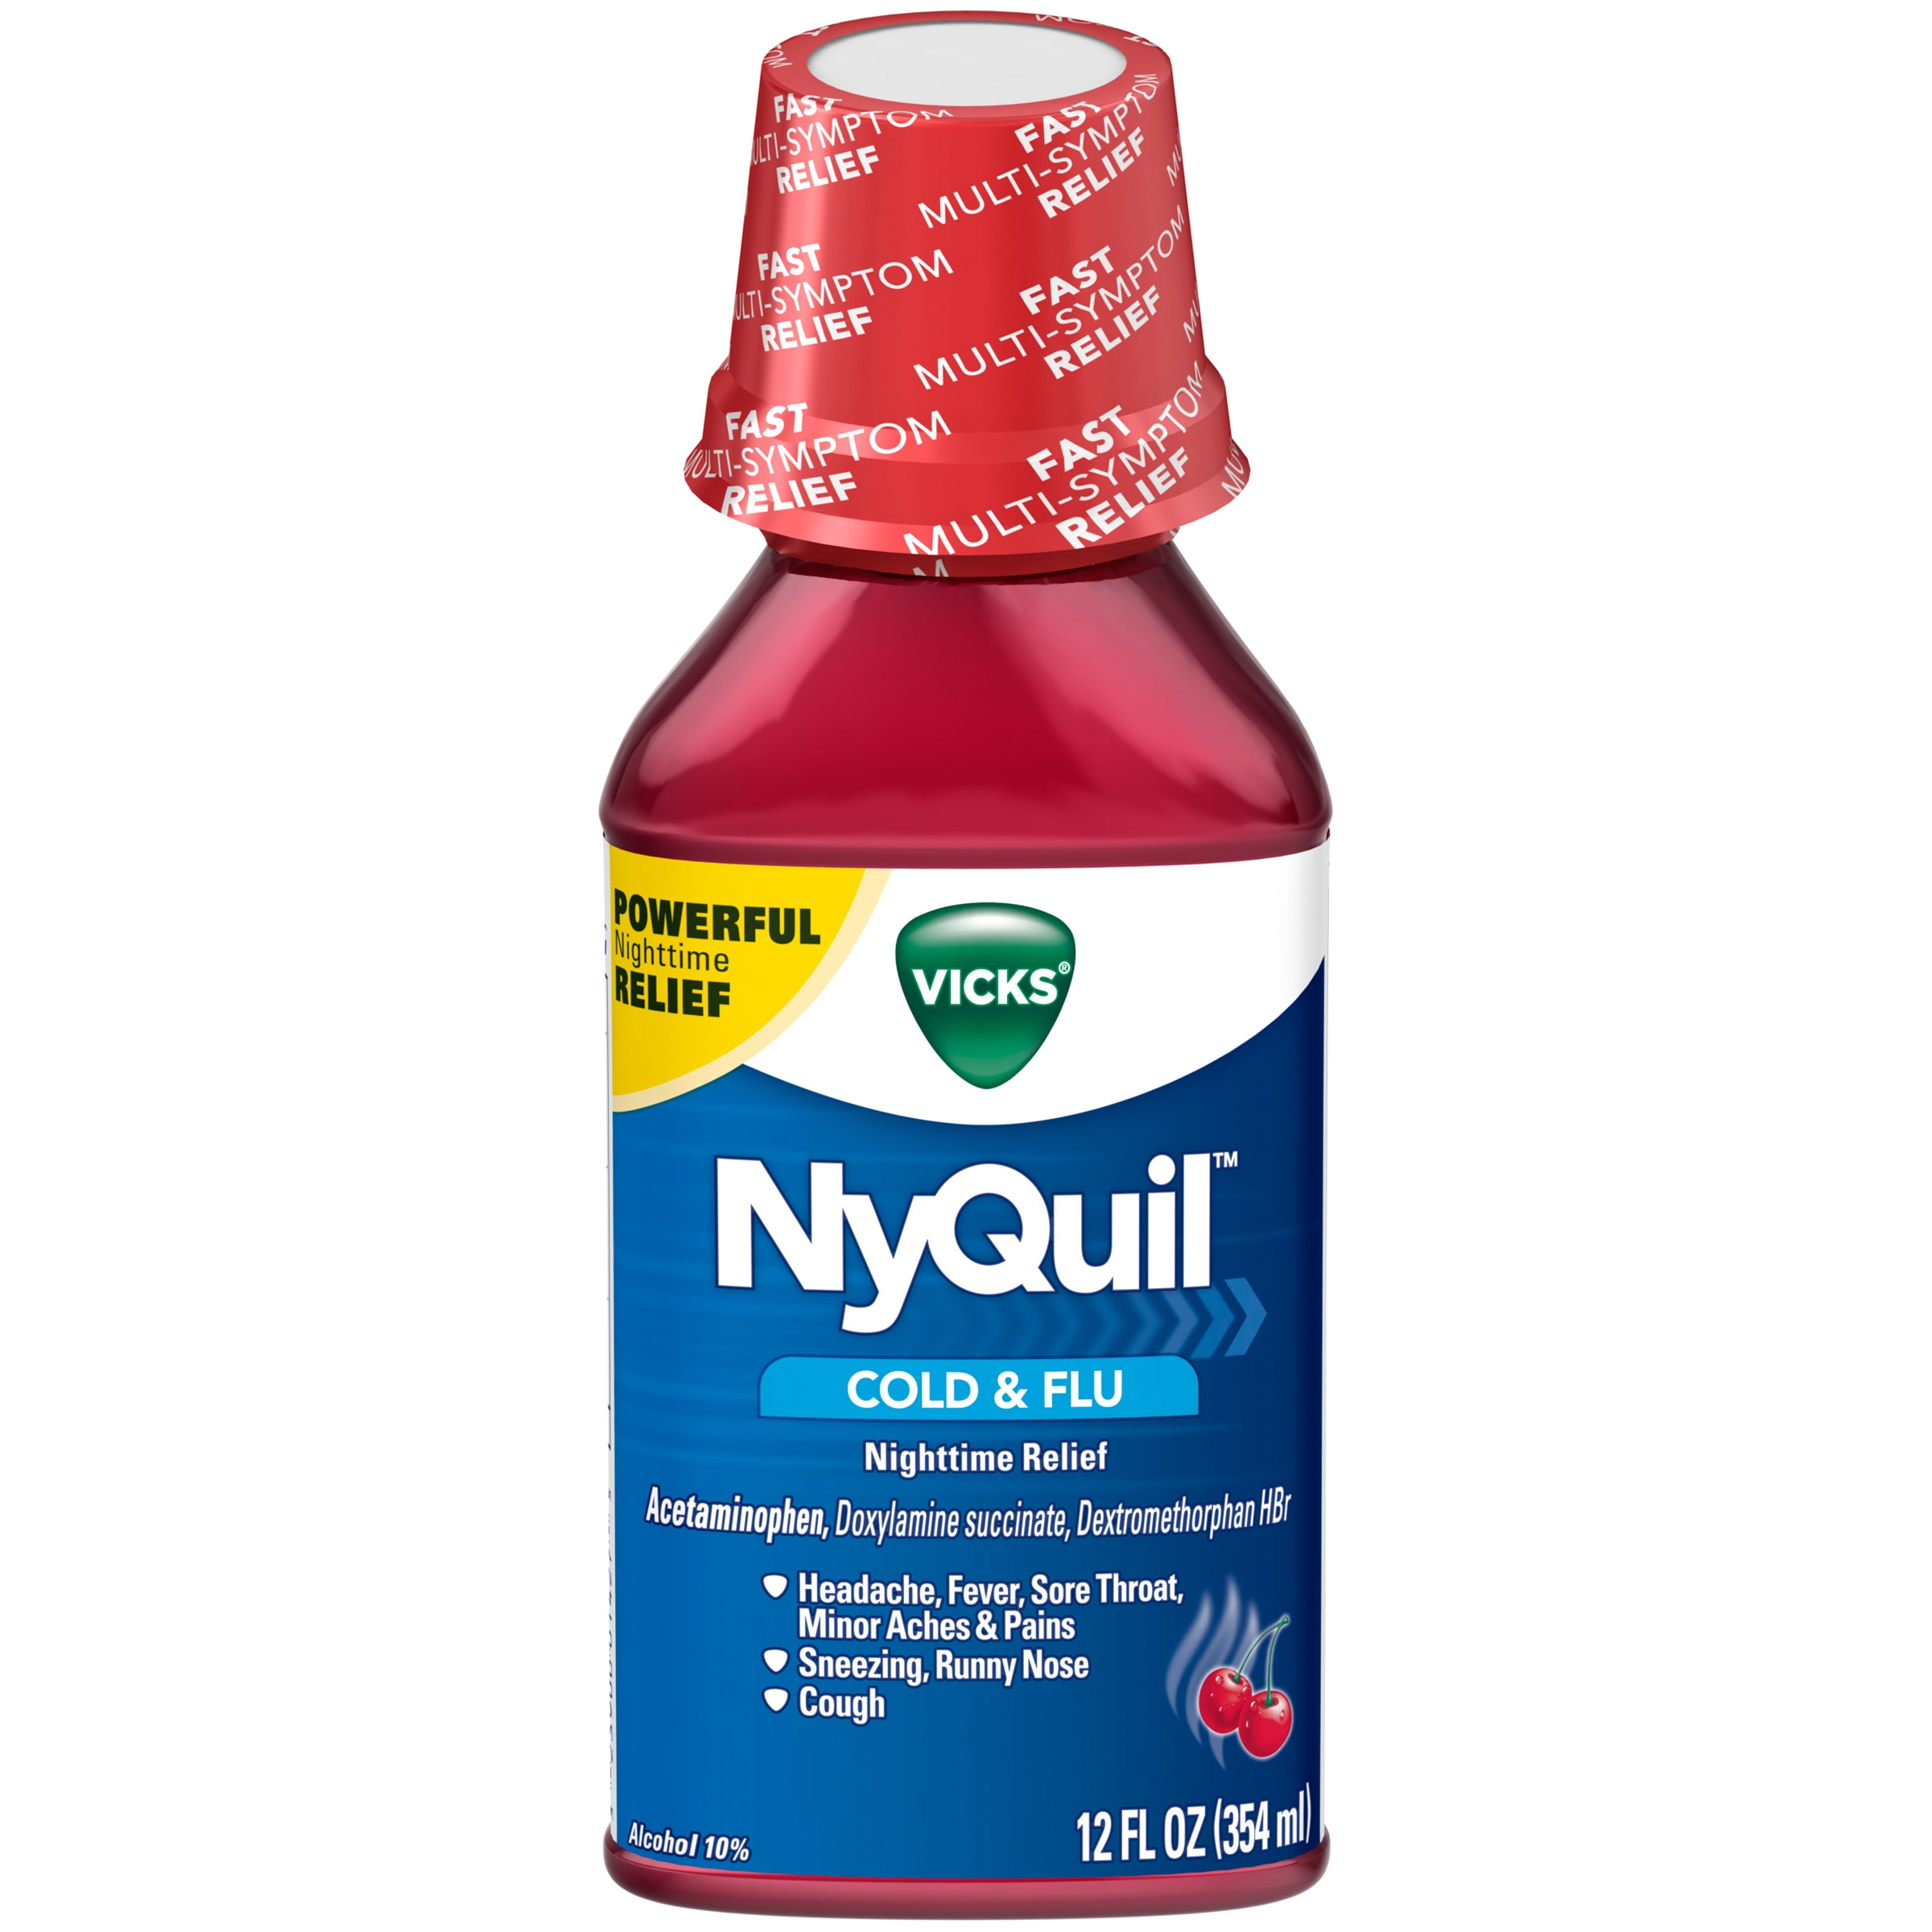 Vicks® NyQuil™ Cold & Flu Nighttime Relief Liquid, 12 Oz